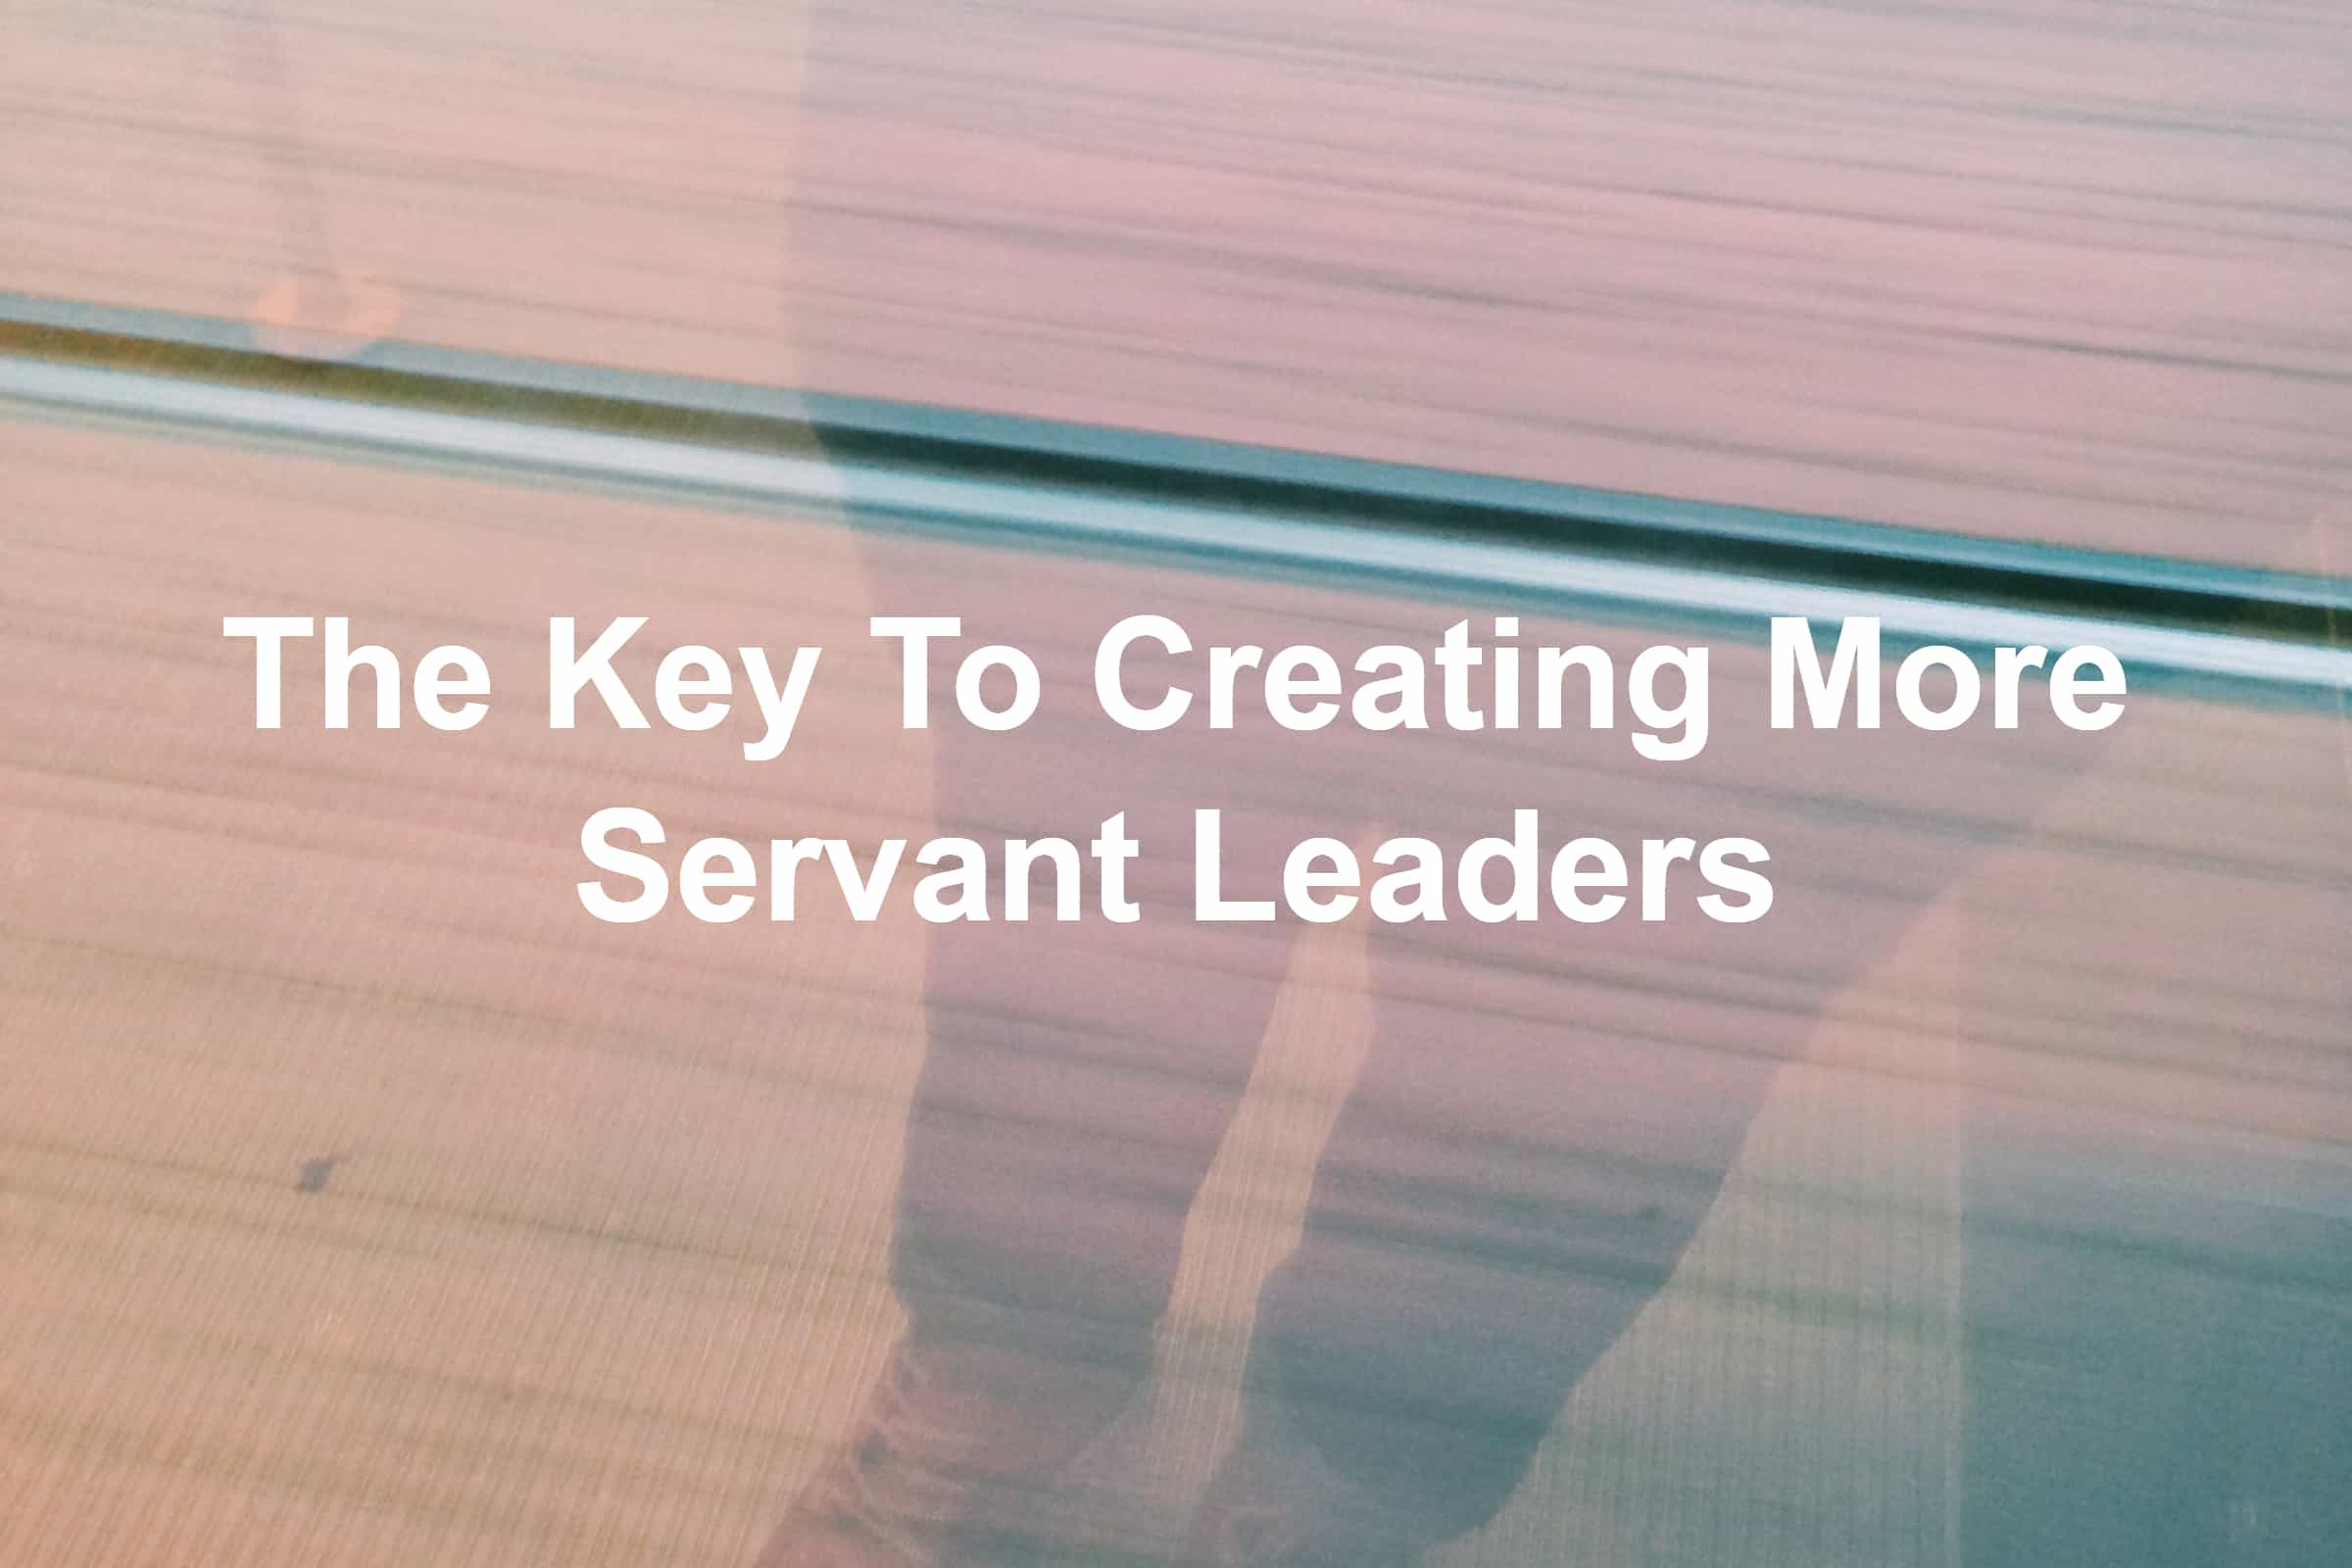 You can help create a generation of servant leaders